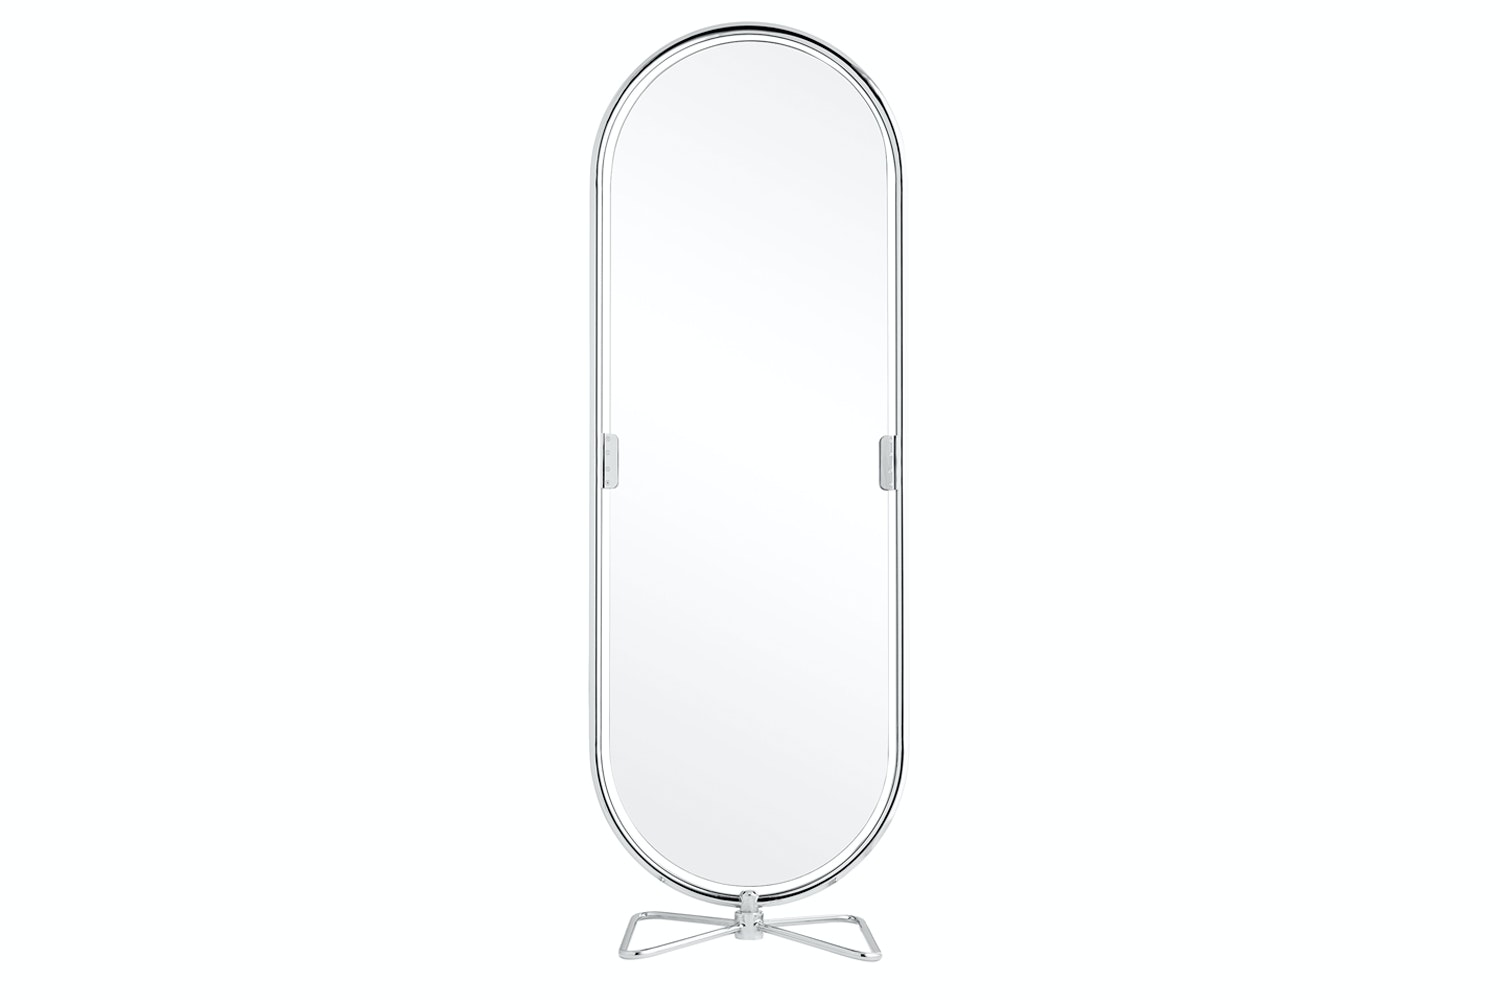 System 1-2-3 Mirror by Verner Panton for Verpan